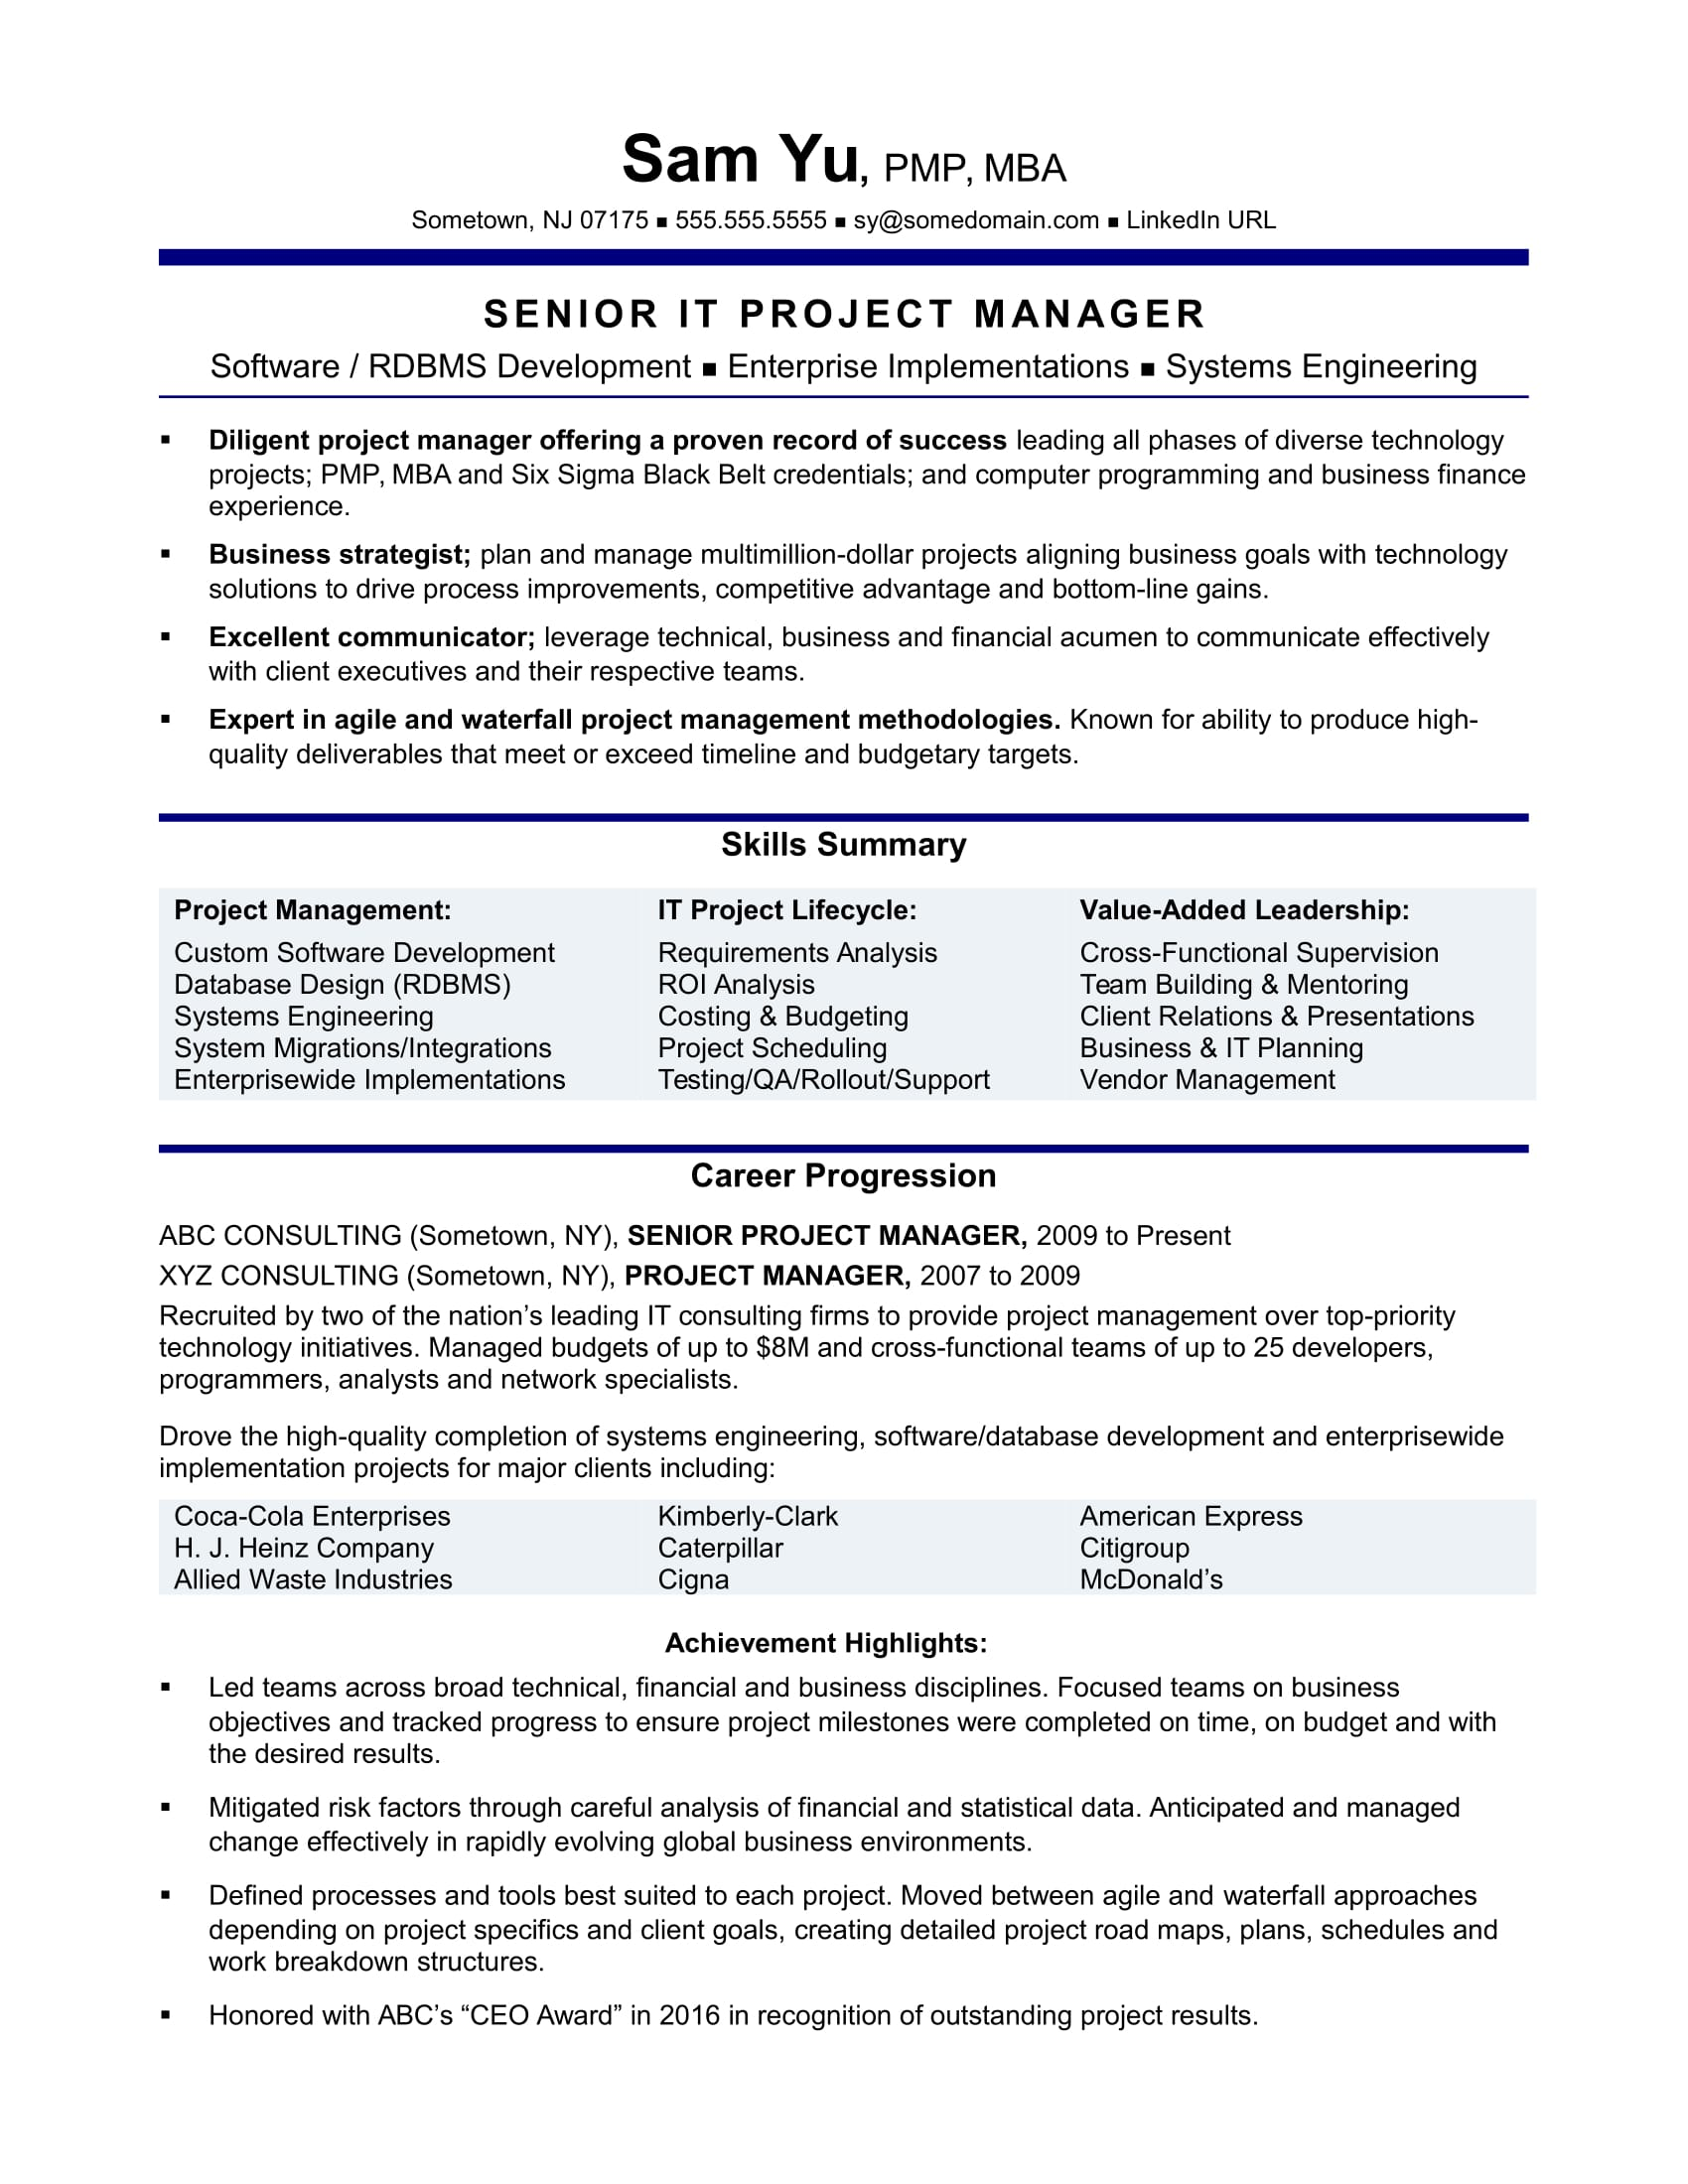 Experienced IT Project Manager Resume Sample  Monster Resume Examples